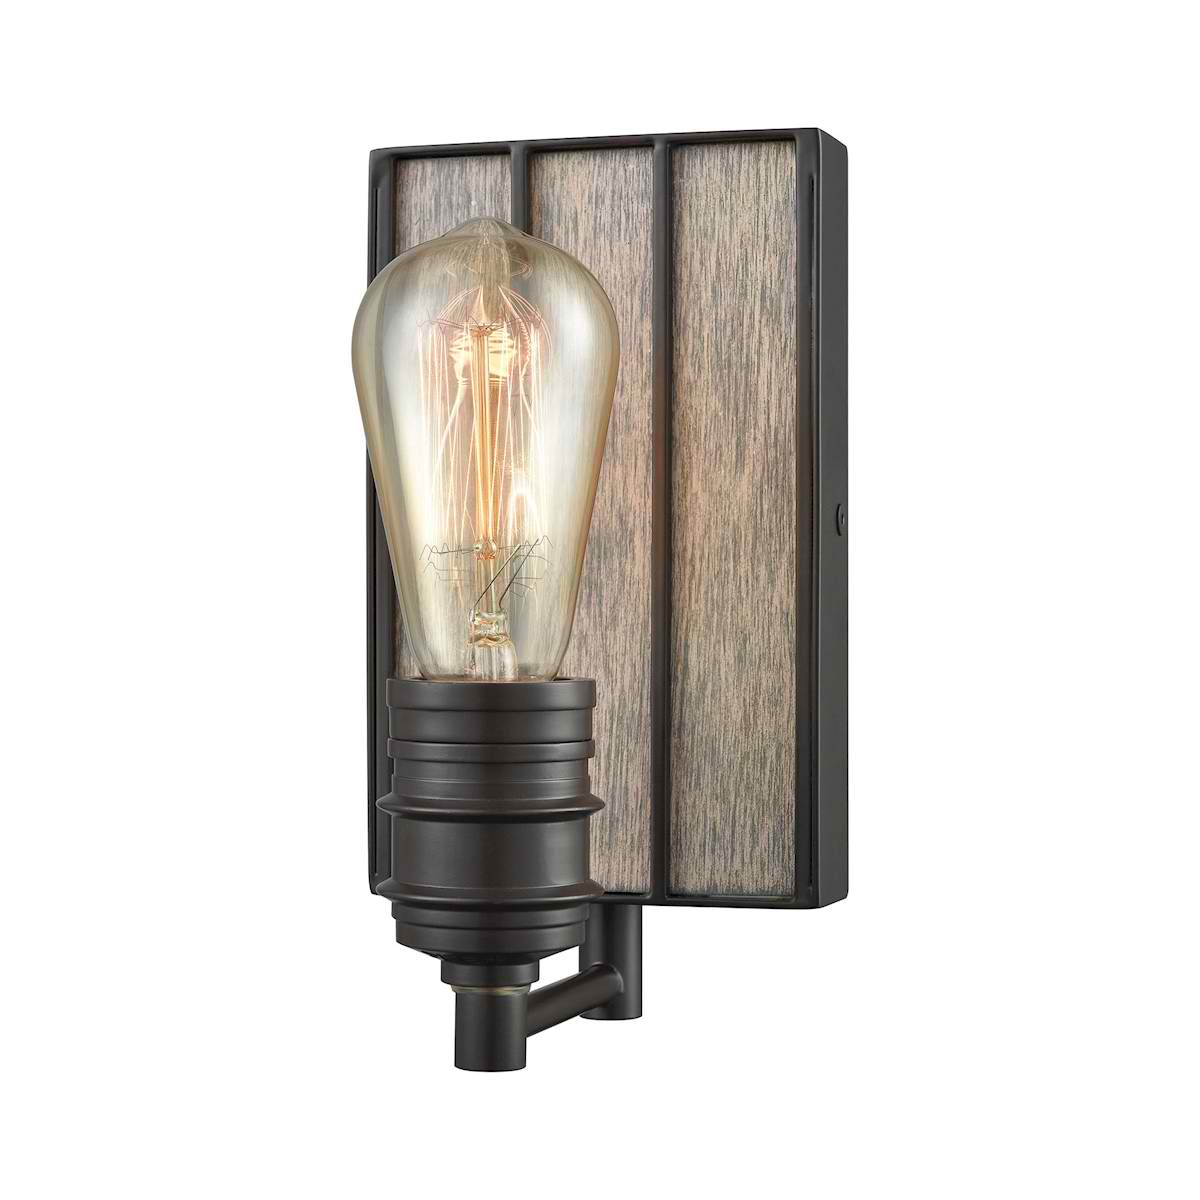 Brookweiler 1 Light Vanity in Oil Rubbed Bronze with Washed Wood Backplate